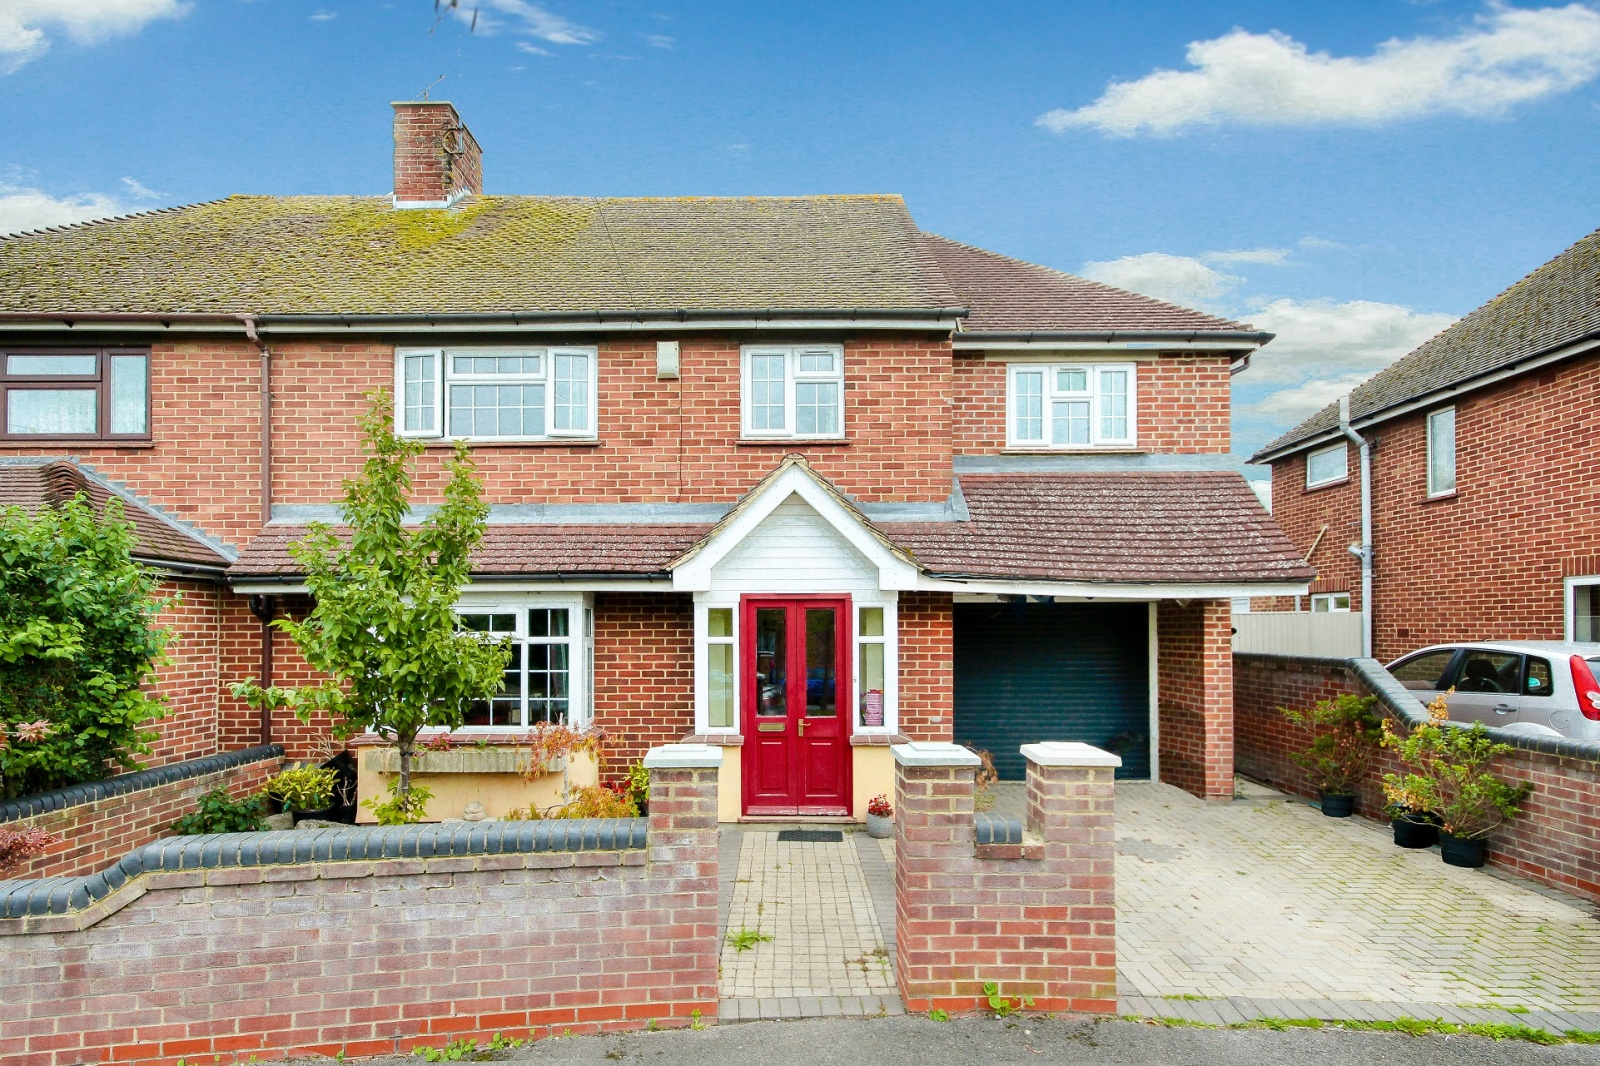 Henley Road, Sandford-on-Thames, OX4 4YW